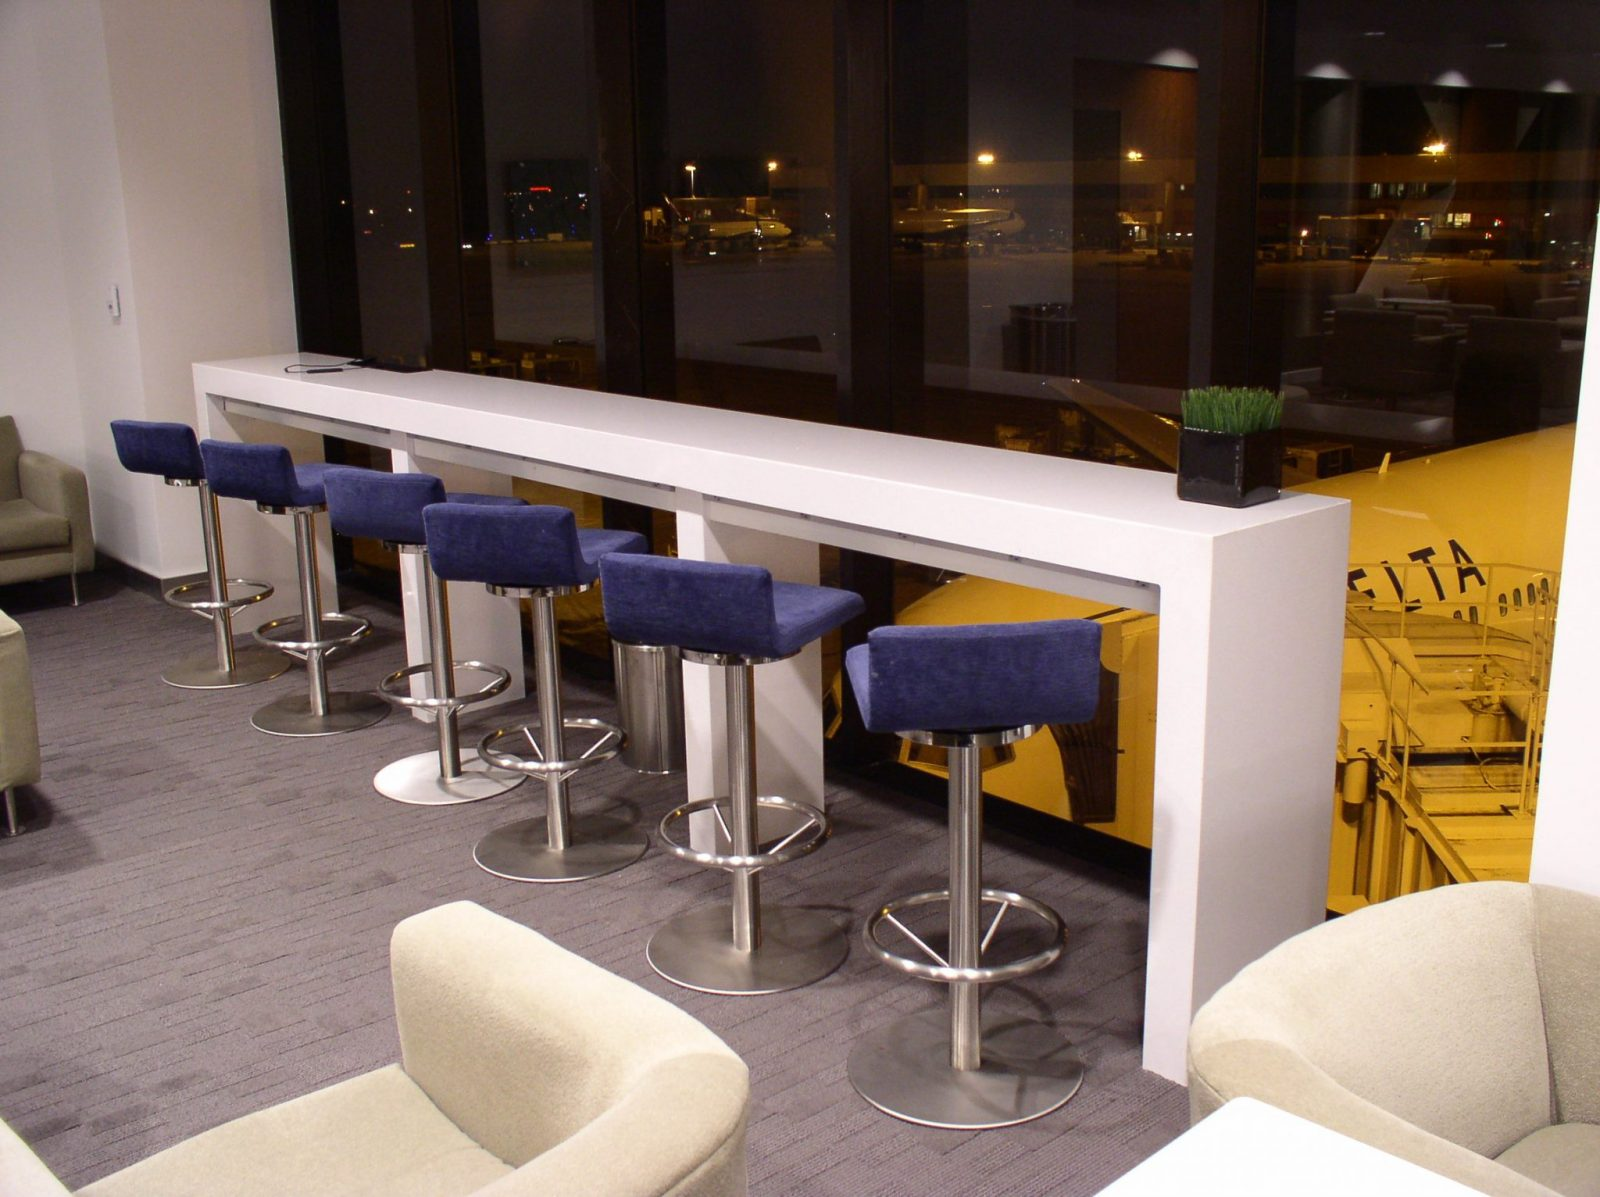 Commercial Countertop Airport Counter